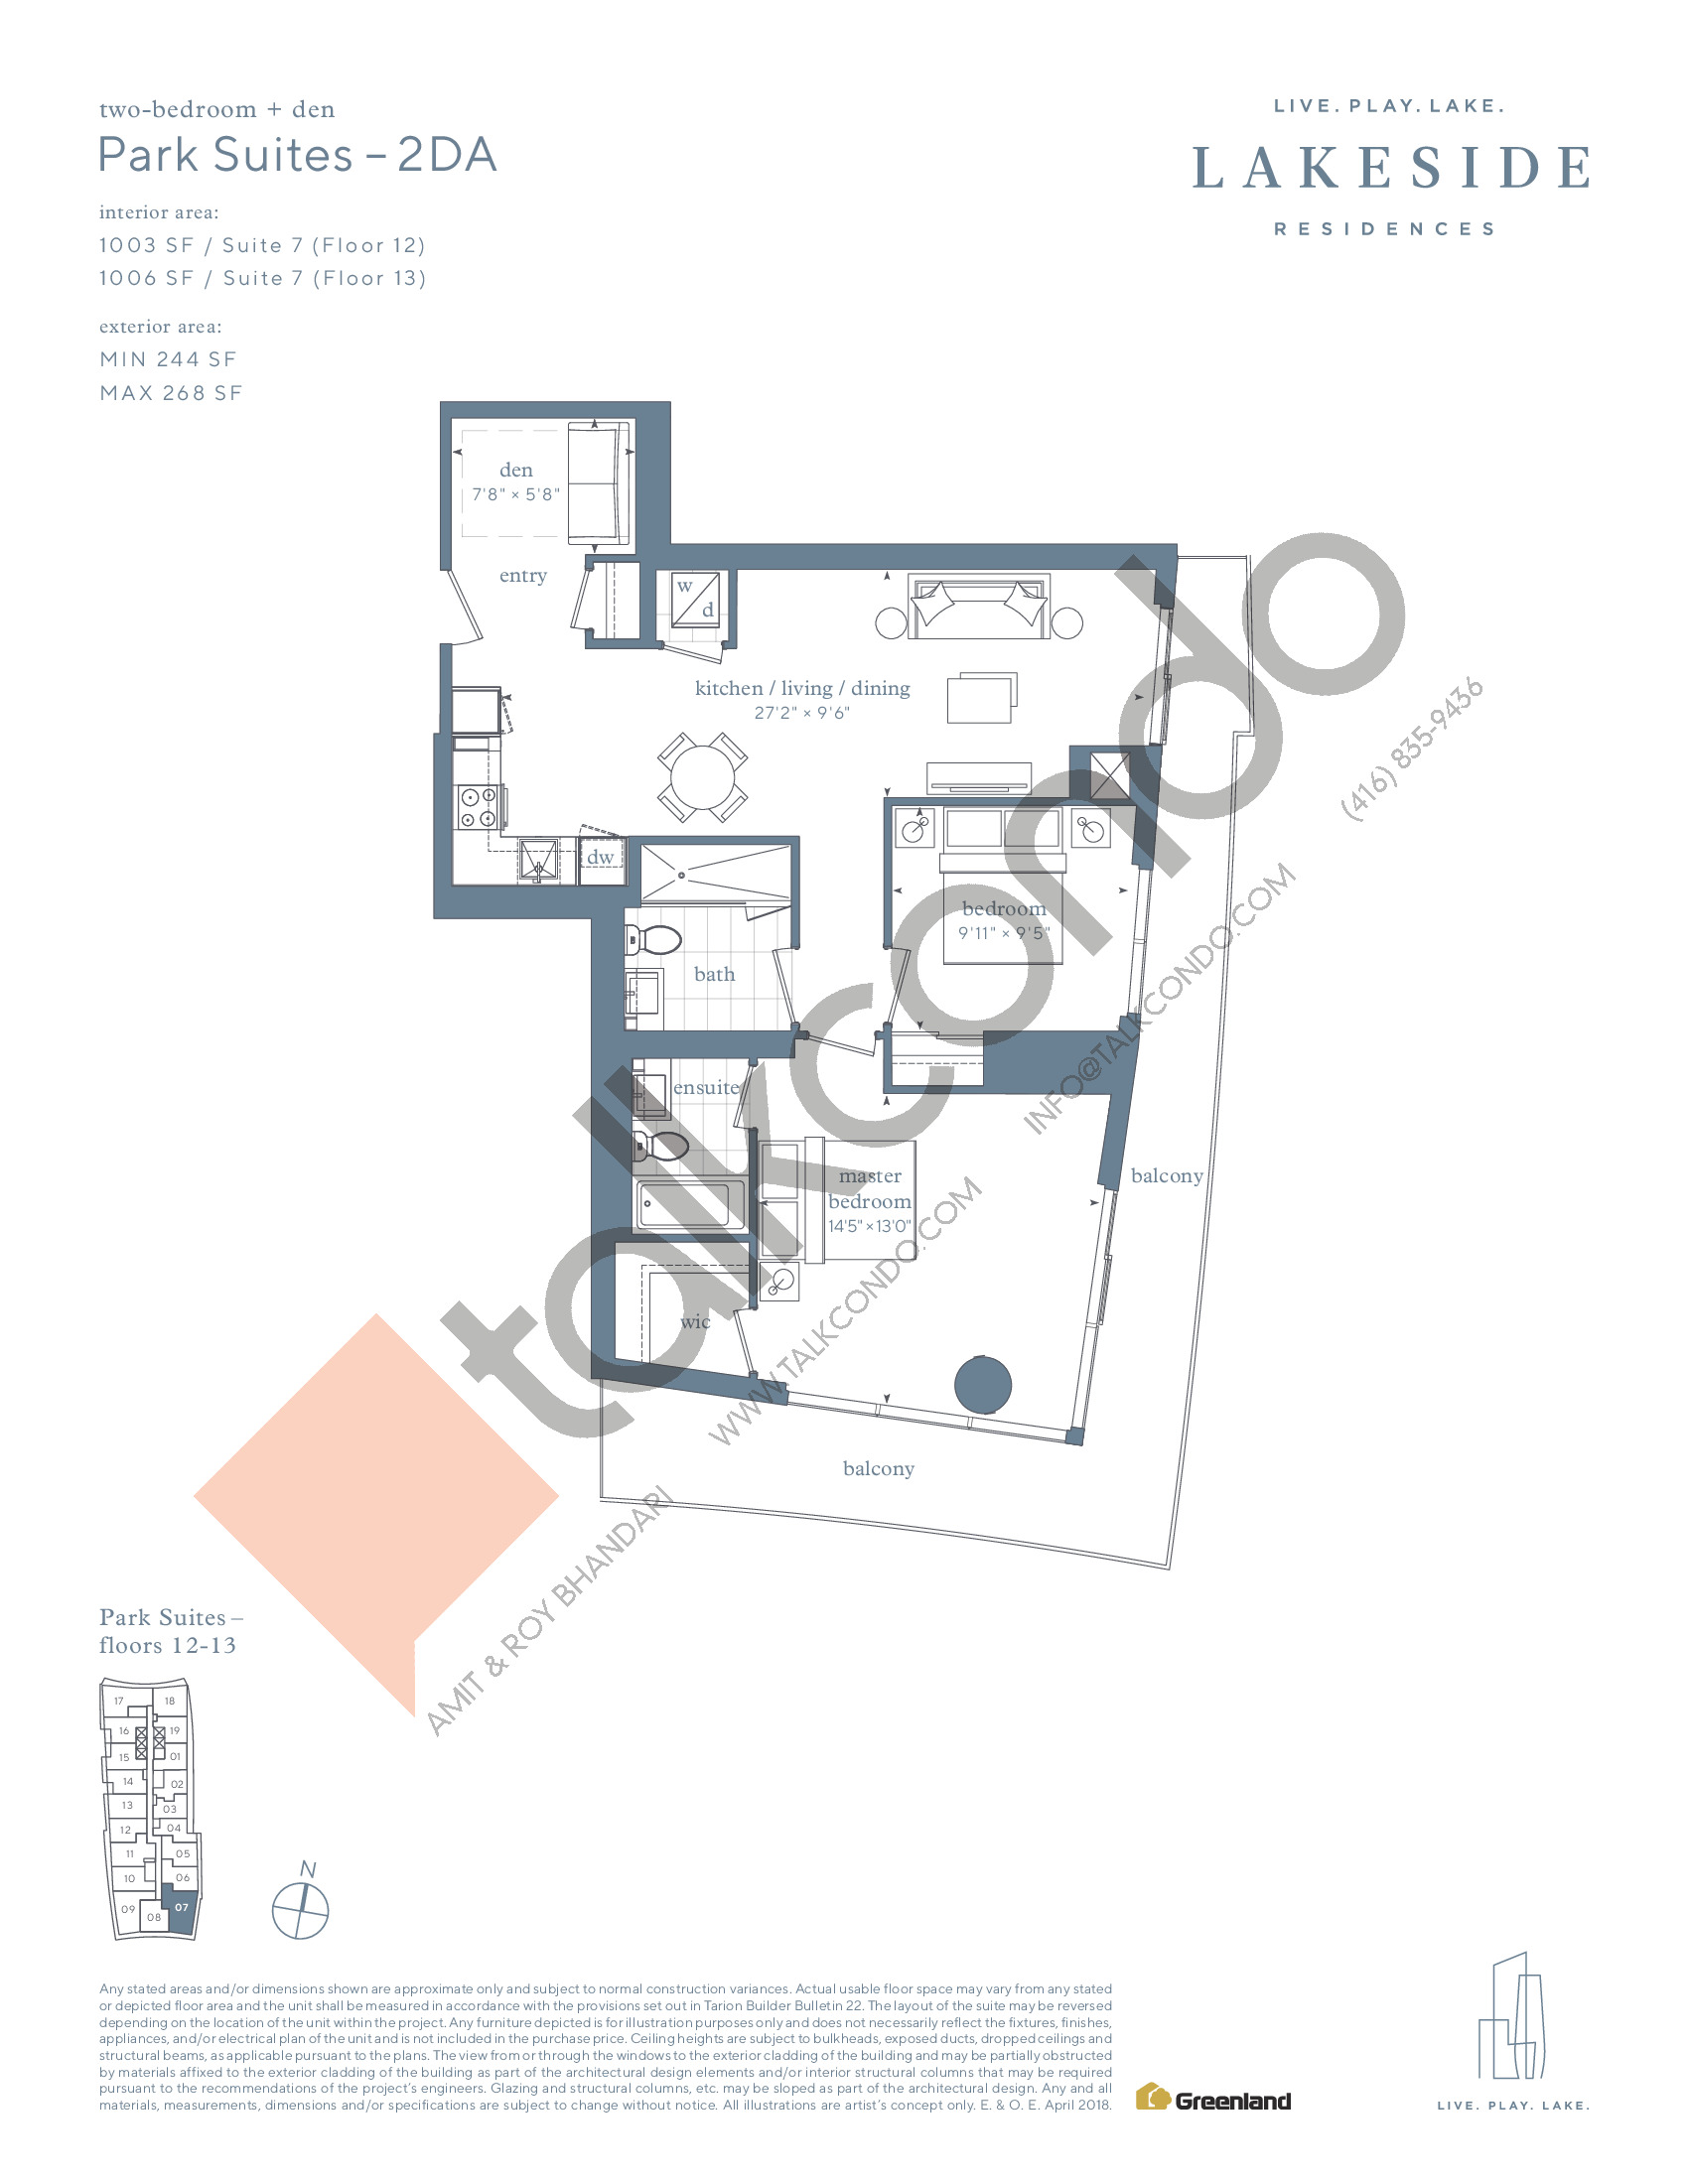 Park Suites - 2DA Floor Plan at Lakeside Residences - 1006 sq.ft